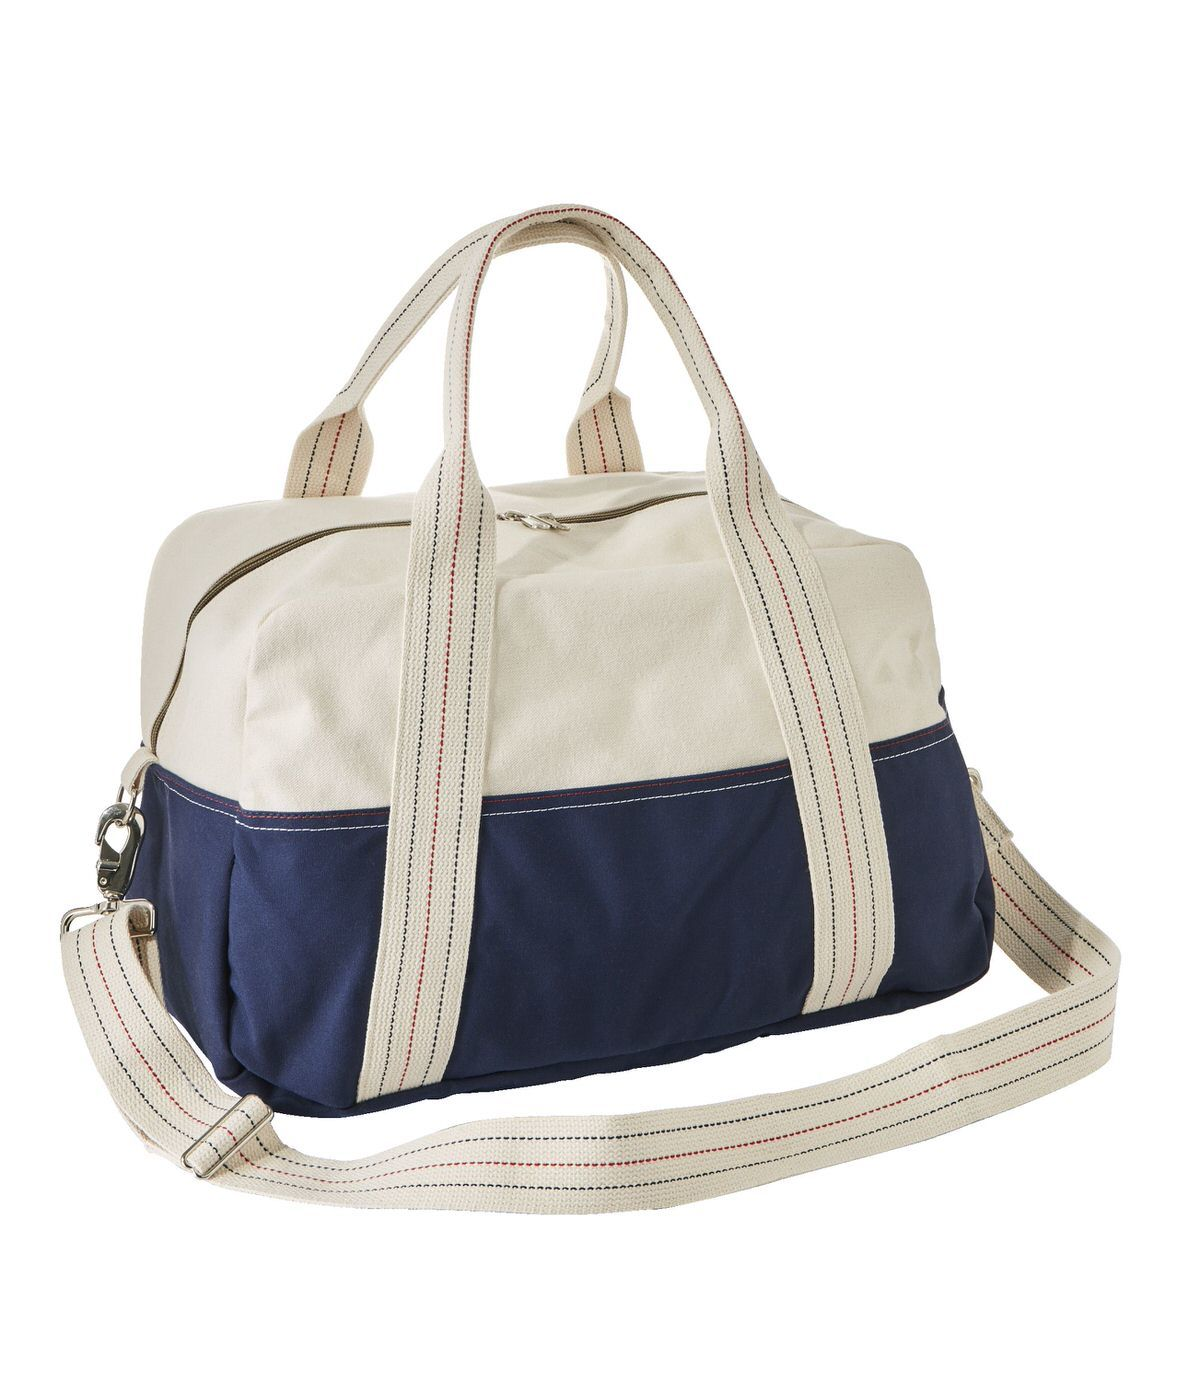 LLBean-Signature-Made-in-Maine-Duffle-blue.jpg?mtime=20190611114411#asset:106079